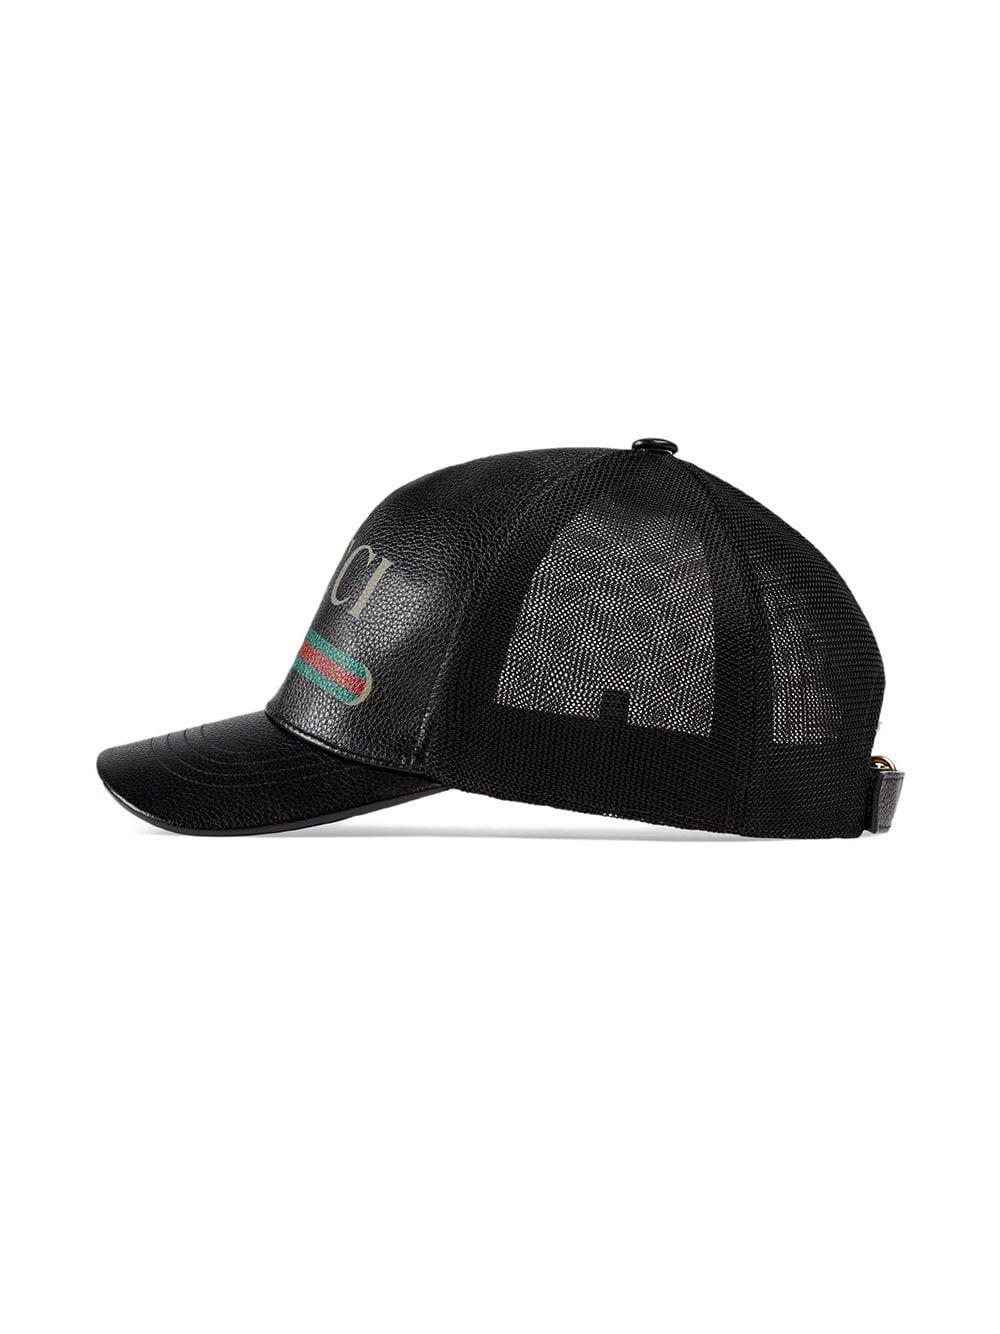 Gucci - Black Print Leather Baseball Hat for Men - Lyst. View fullscreen 144c4fcd0249